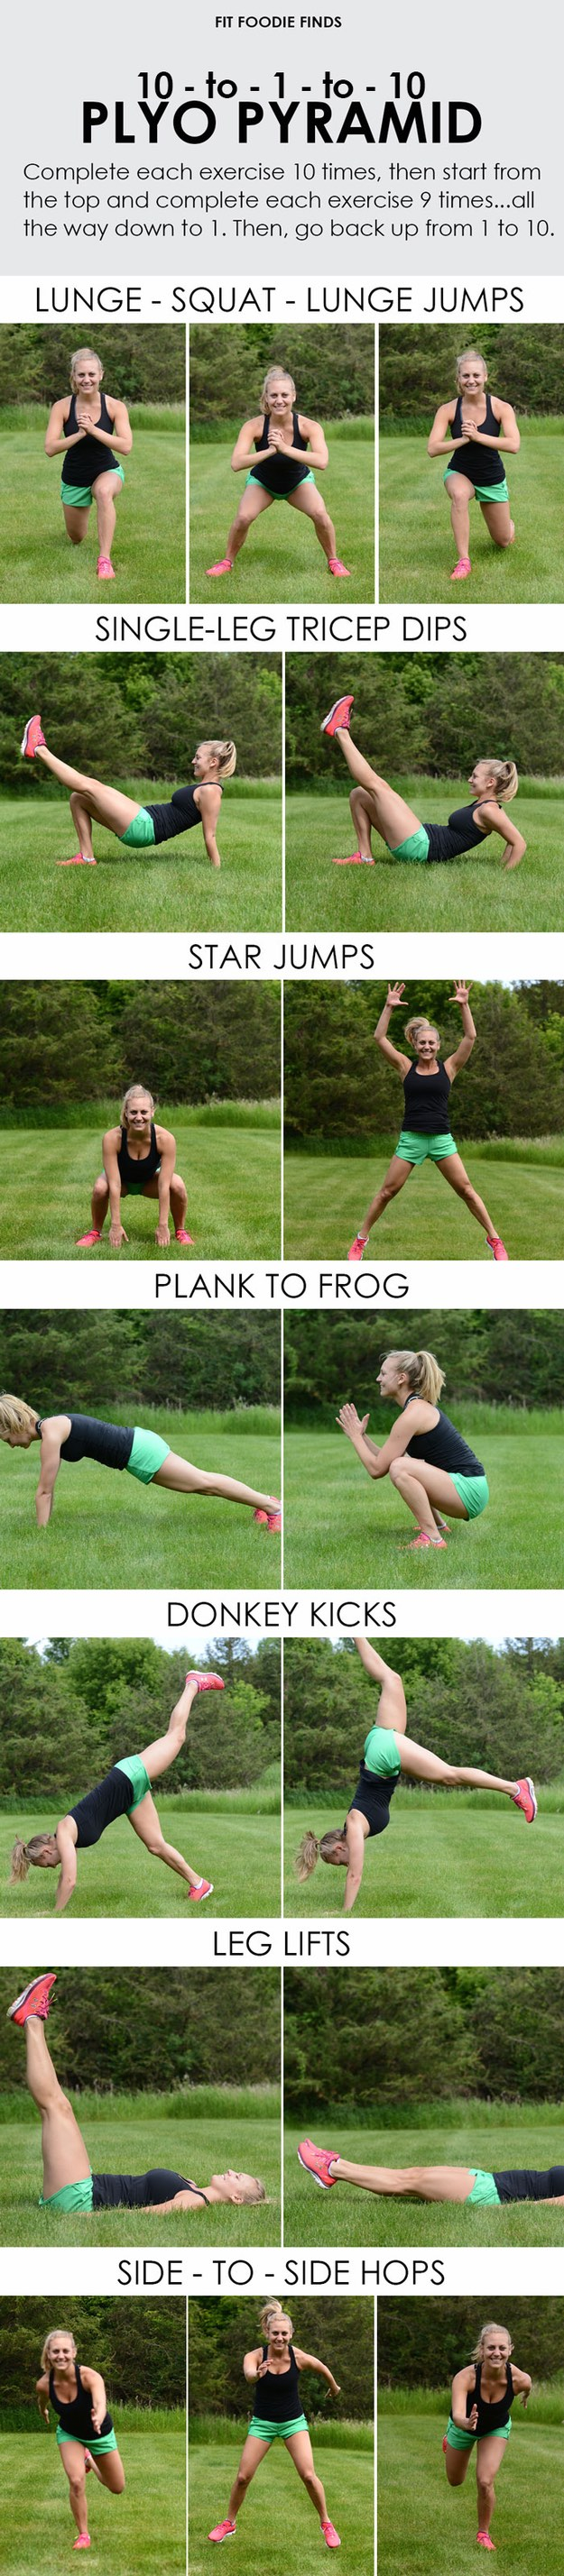 plyo home workout